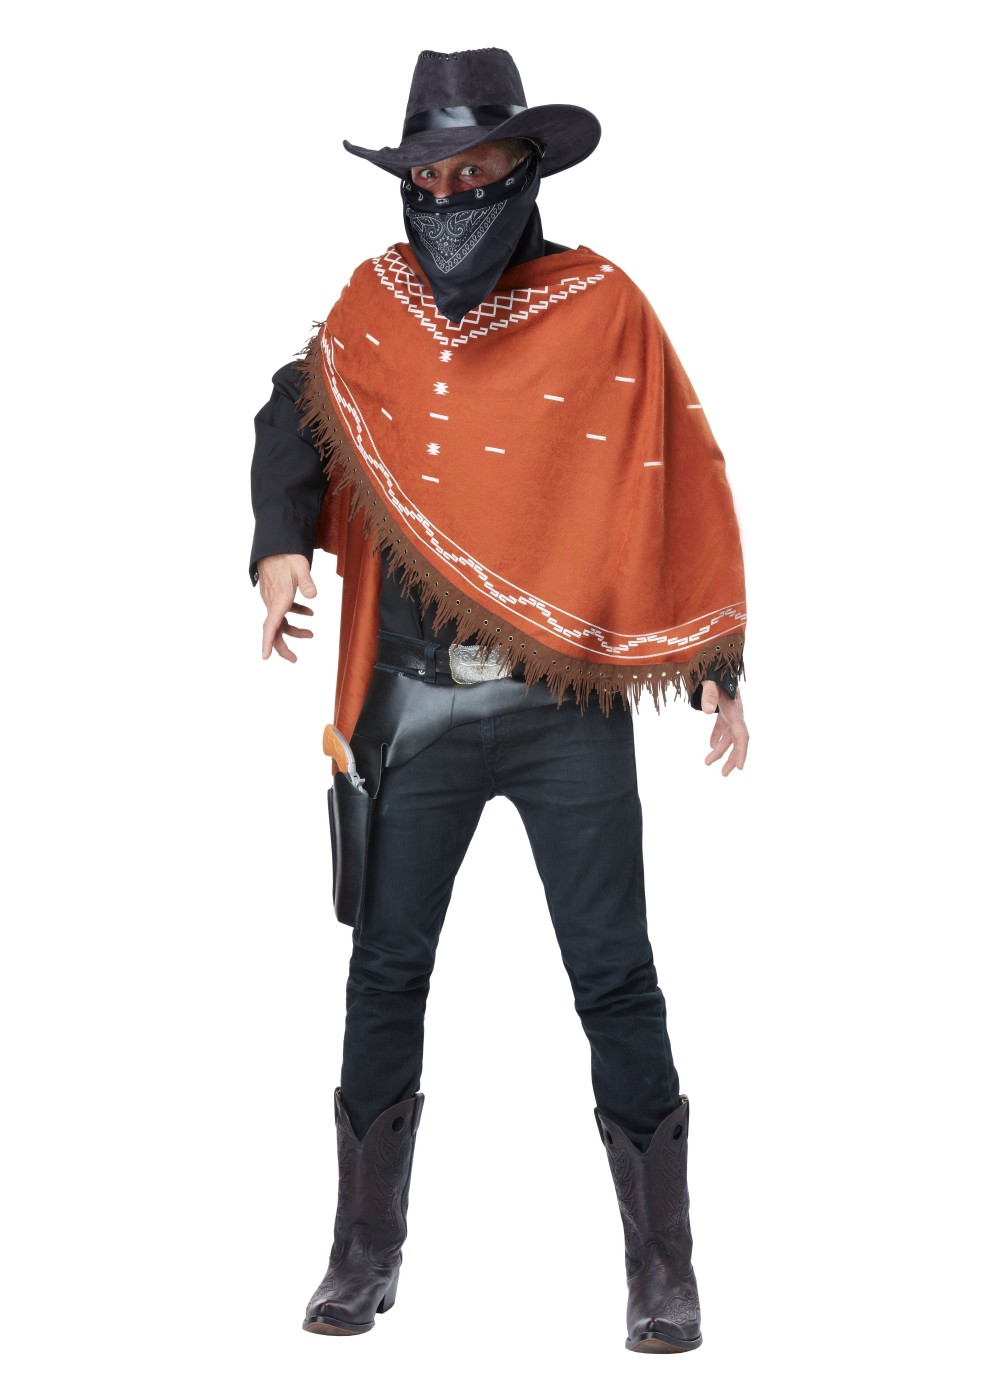 Gruesome Outlaw gruesome-outlaw-men-costume  sc 1 st  Wonder Costumes & Modern Western Costume Ideas for Halloween